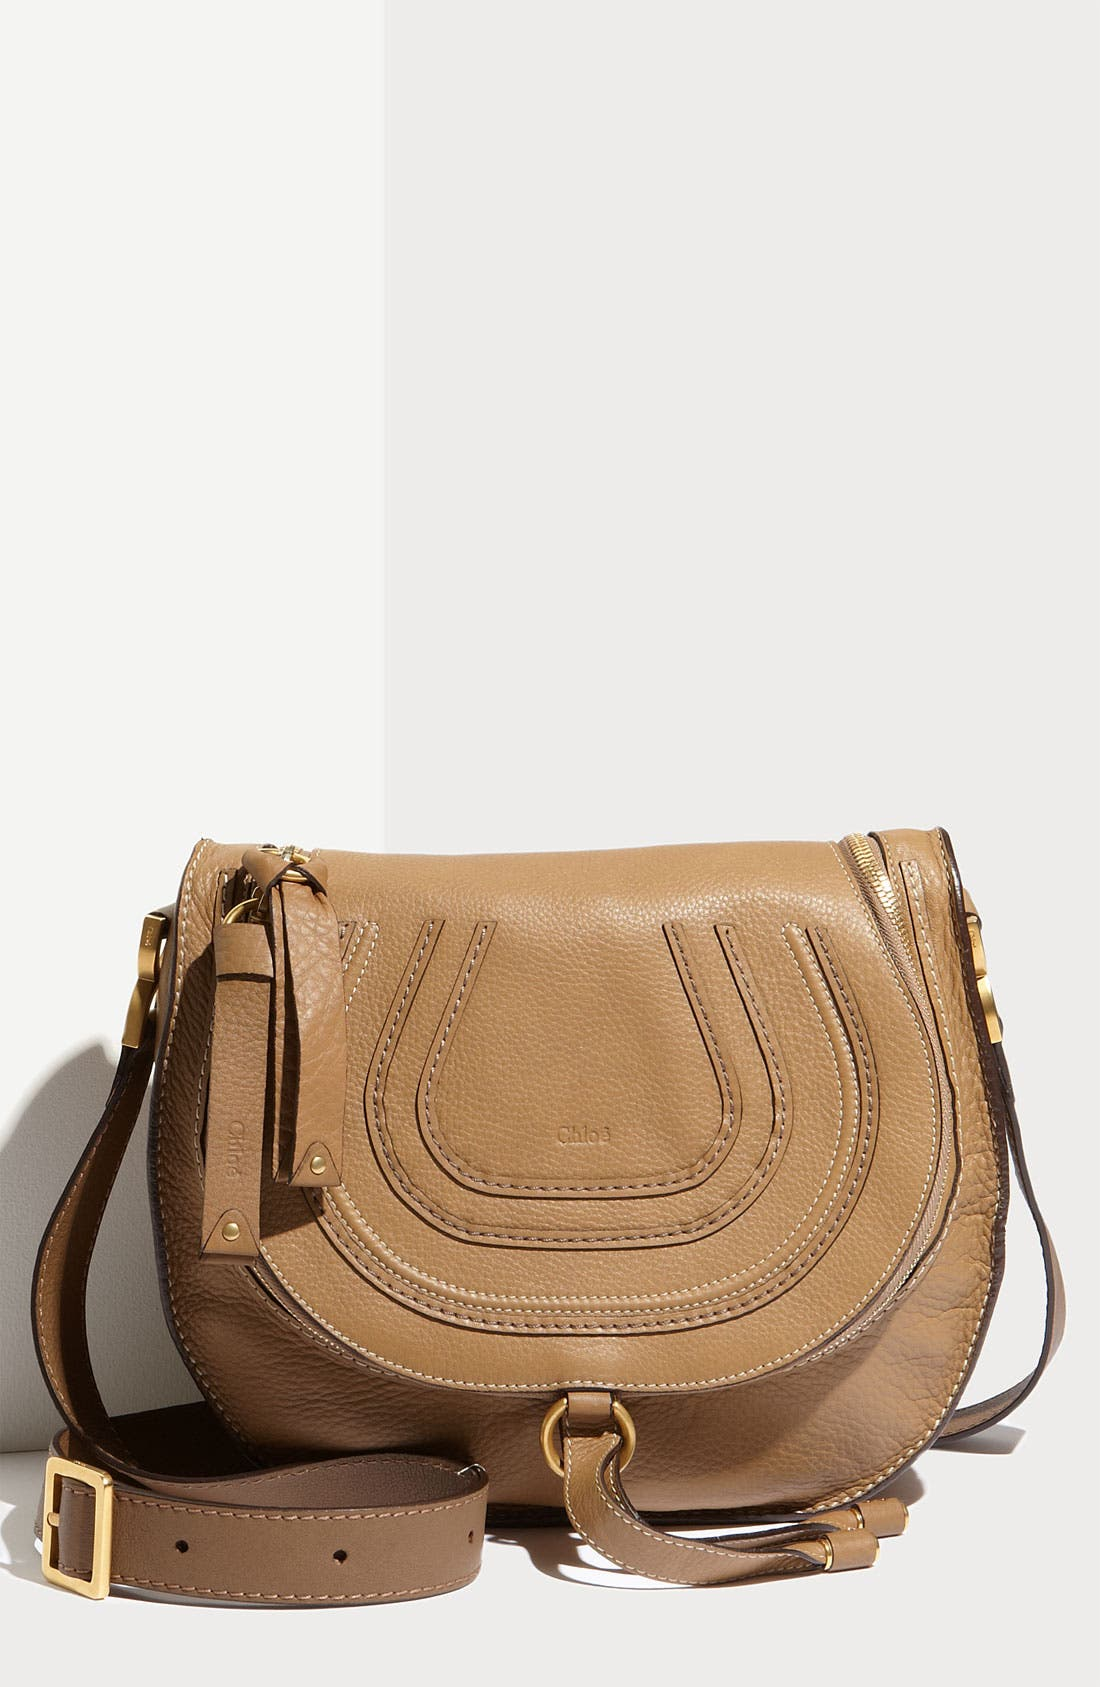 Alternate Image 1 Selected - Chloé 'Marcie' Leather Crossbody Bag